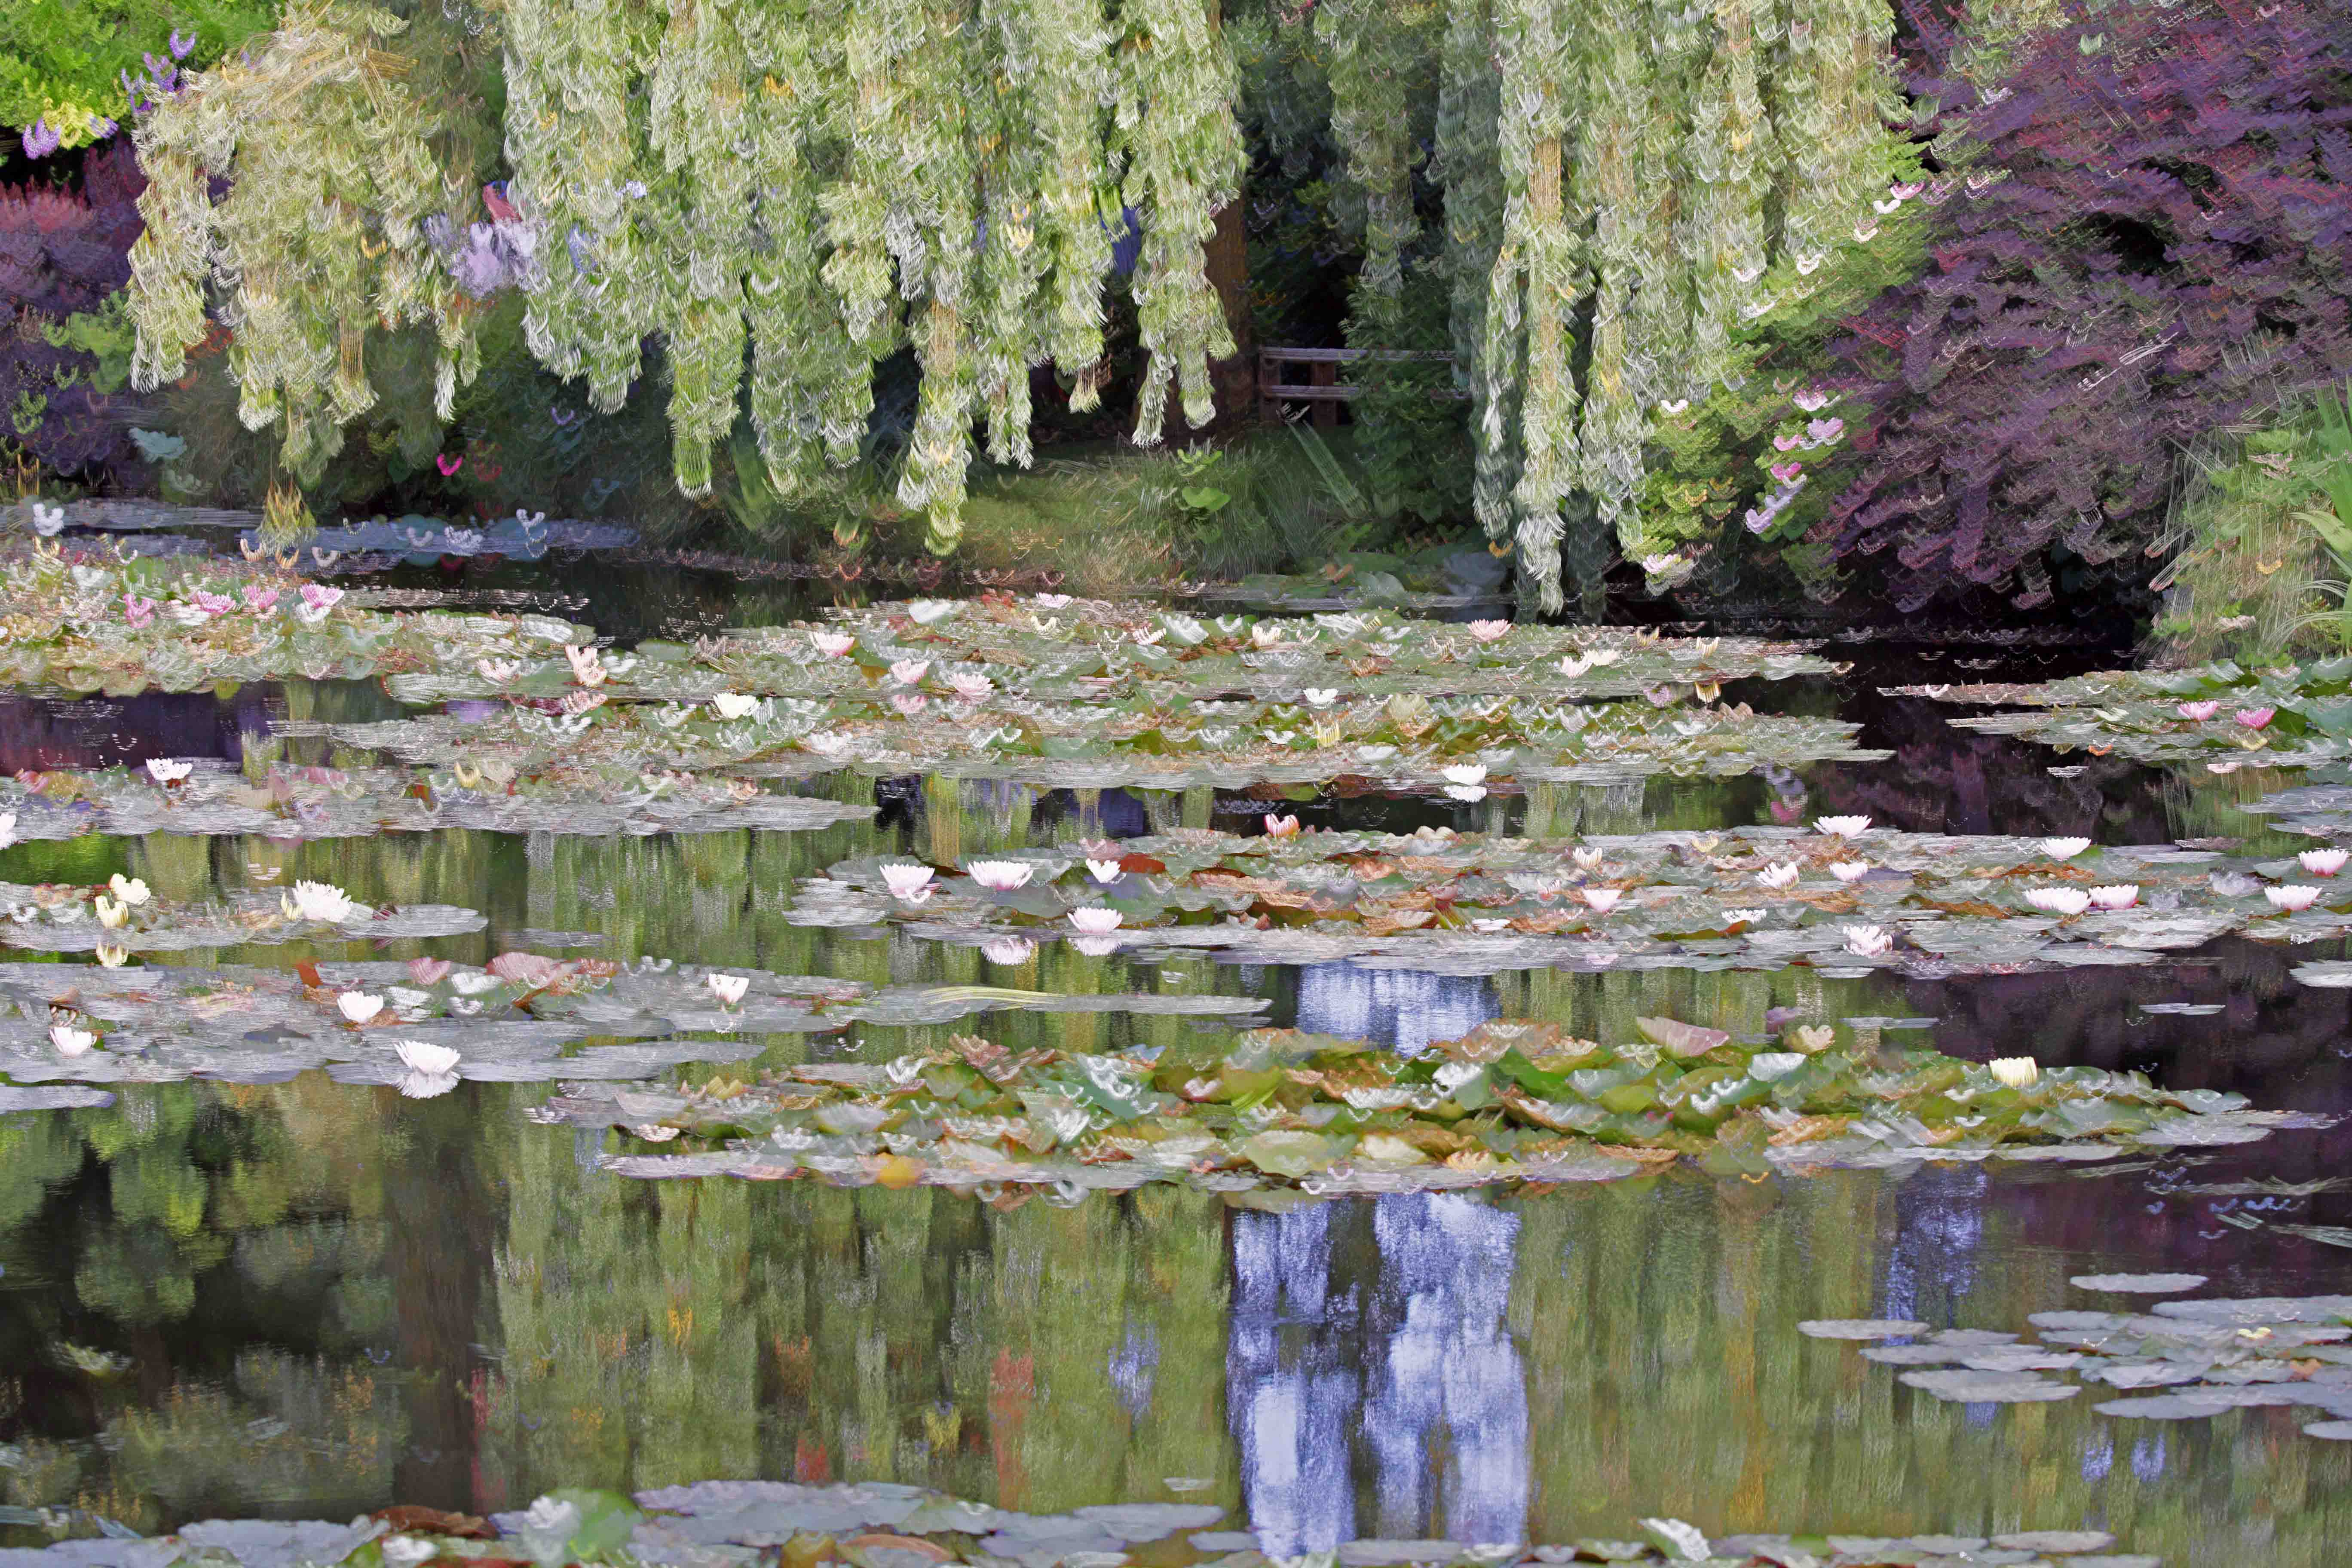 The Pond at Giverny by  Mark Weller - Masterpiece Online